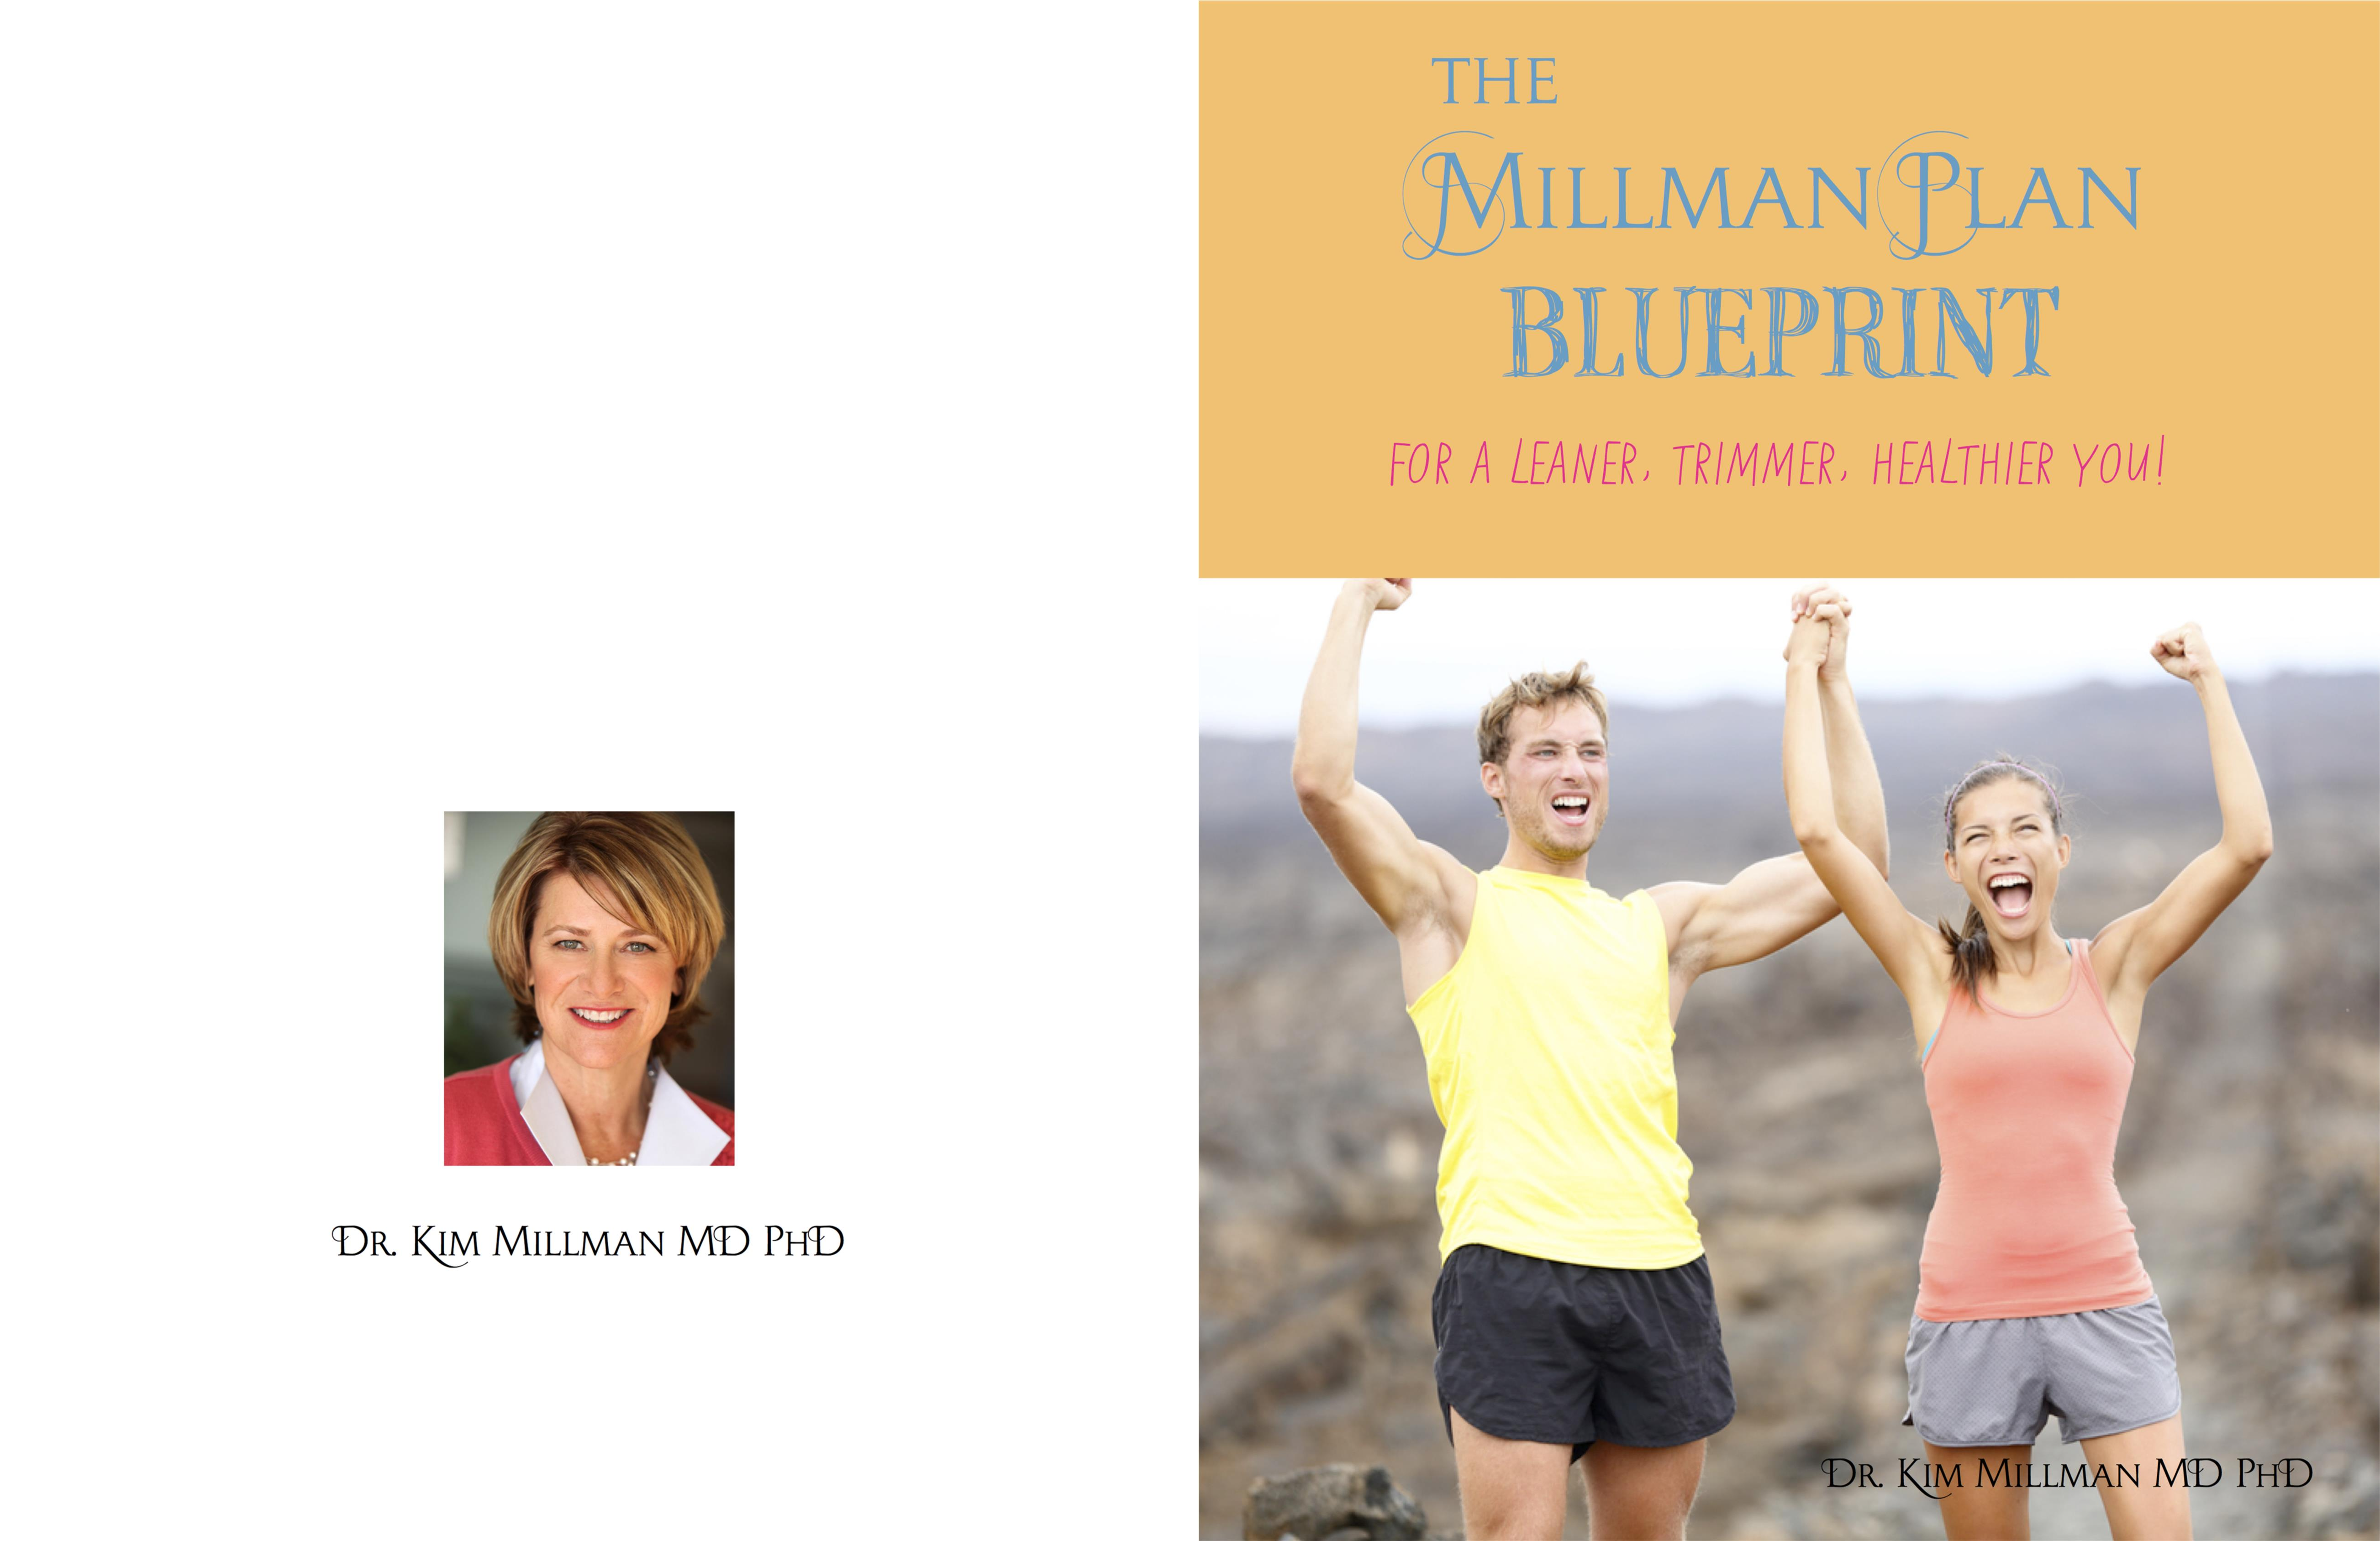 The Millman Plan Blueprint cover image